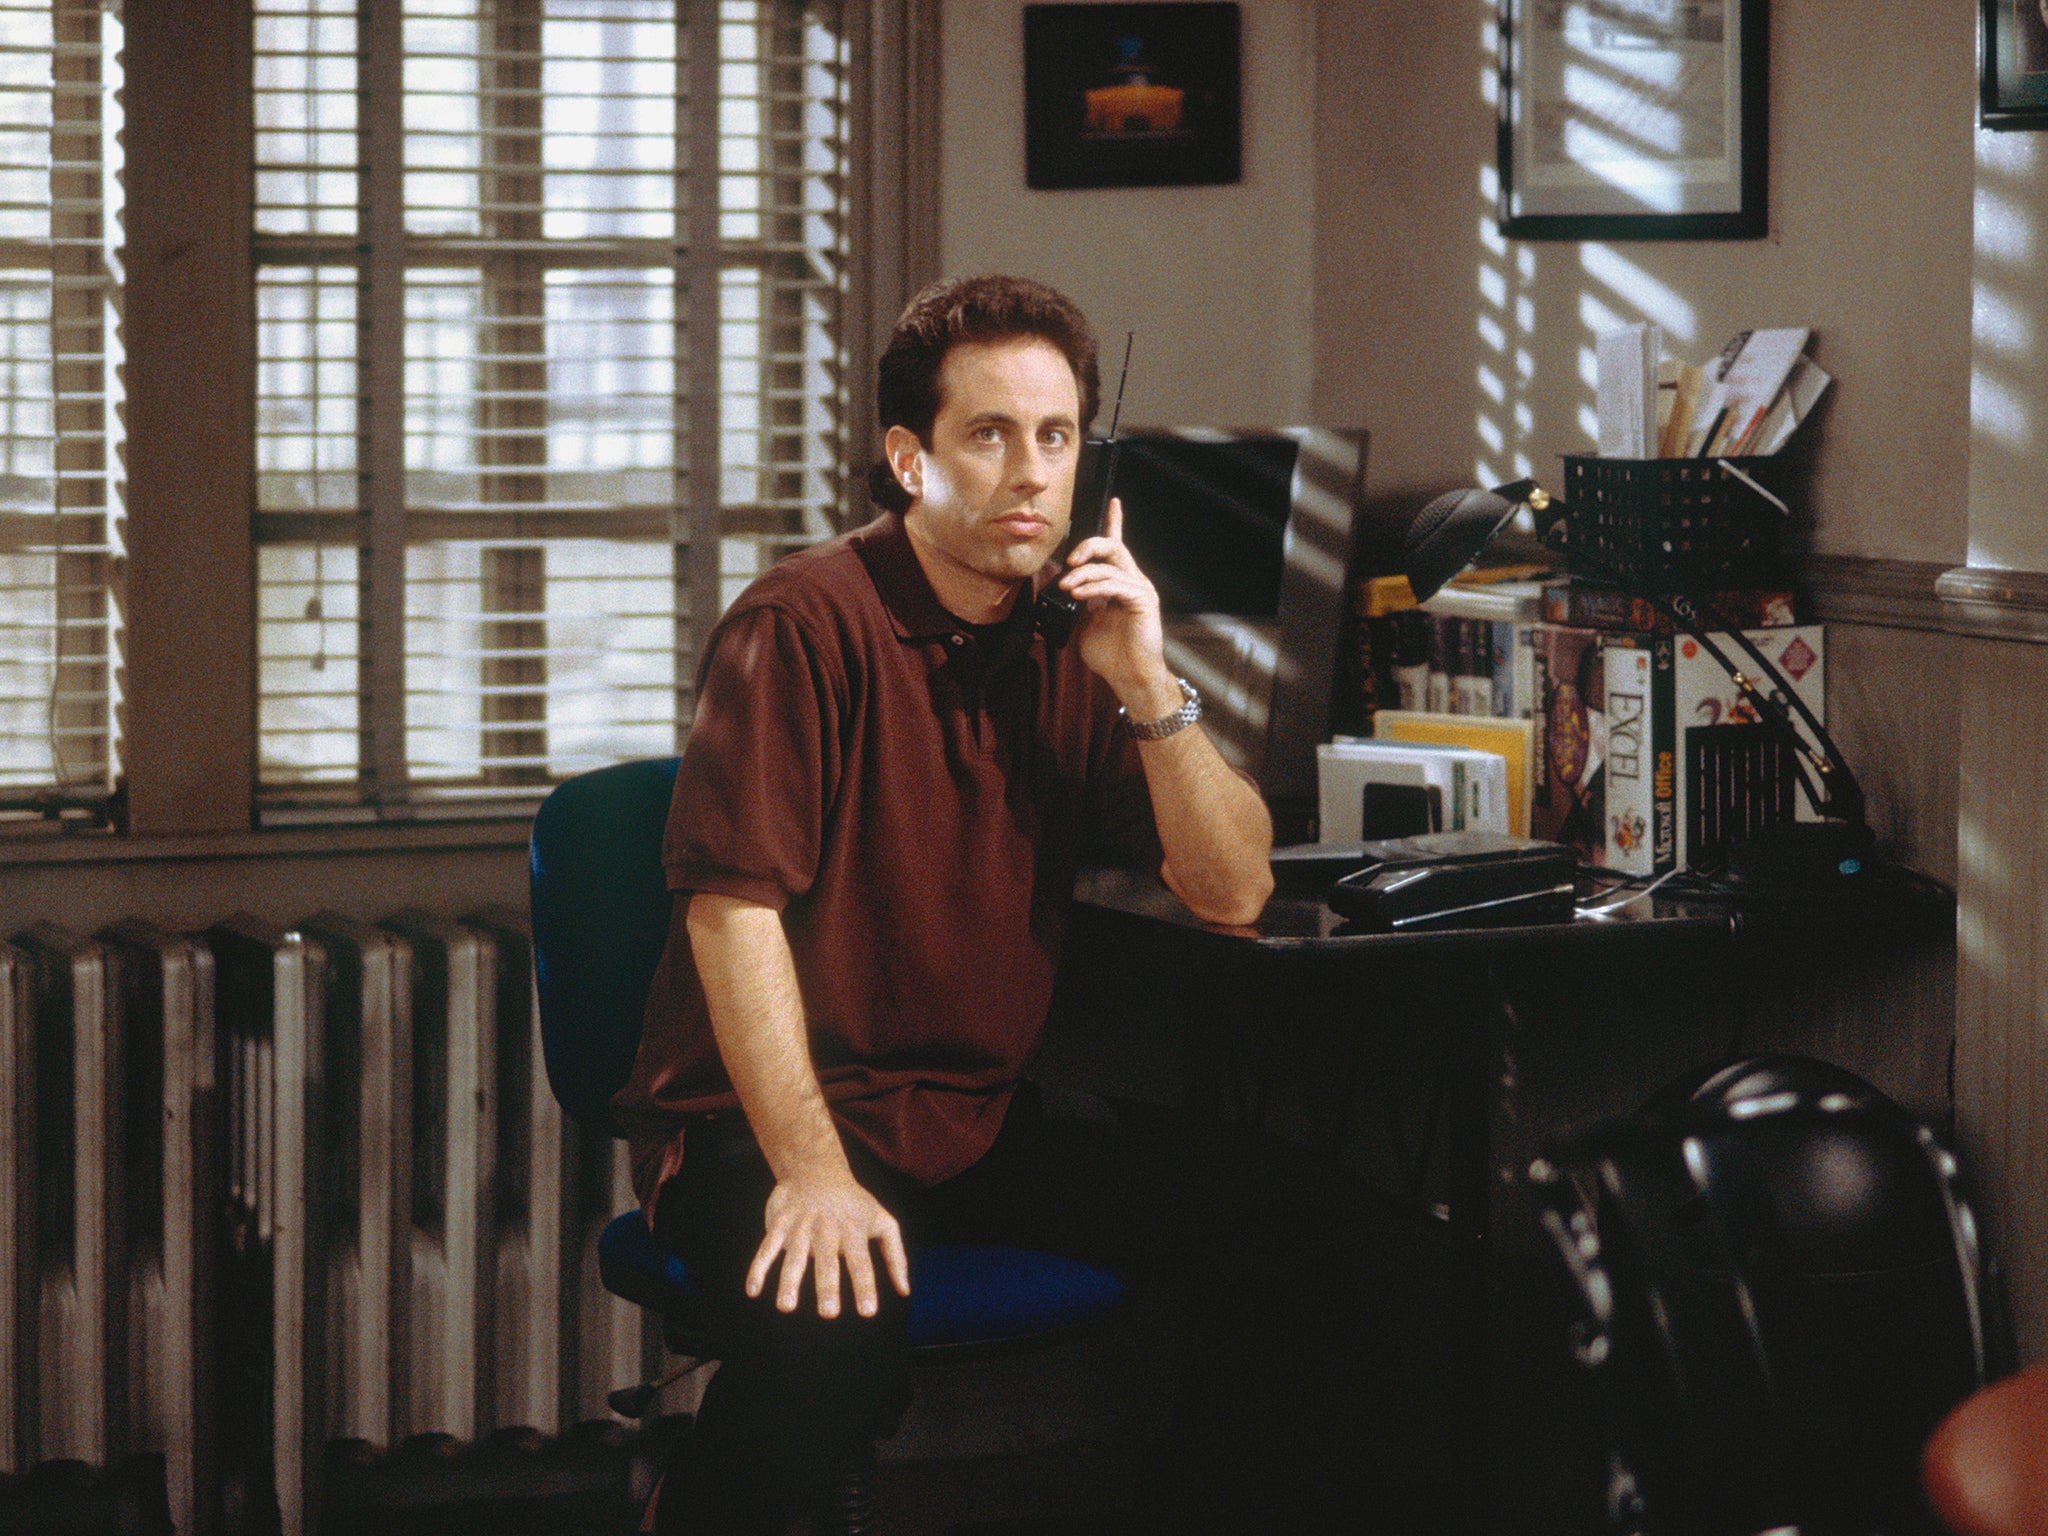 Seinfeld Quotes Seinfeld At 25 The Show's Best Quotes  The Independent